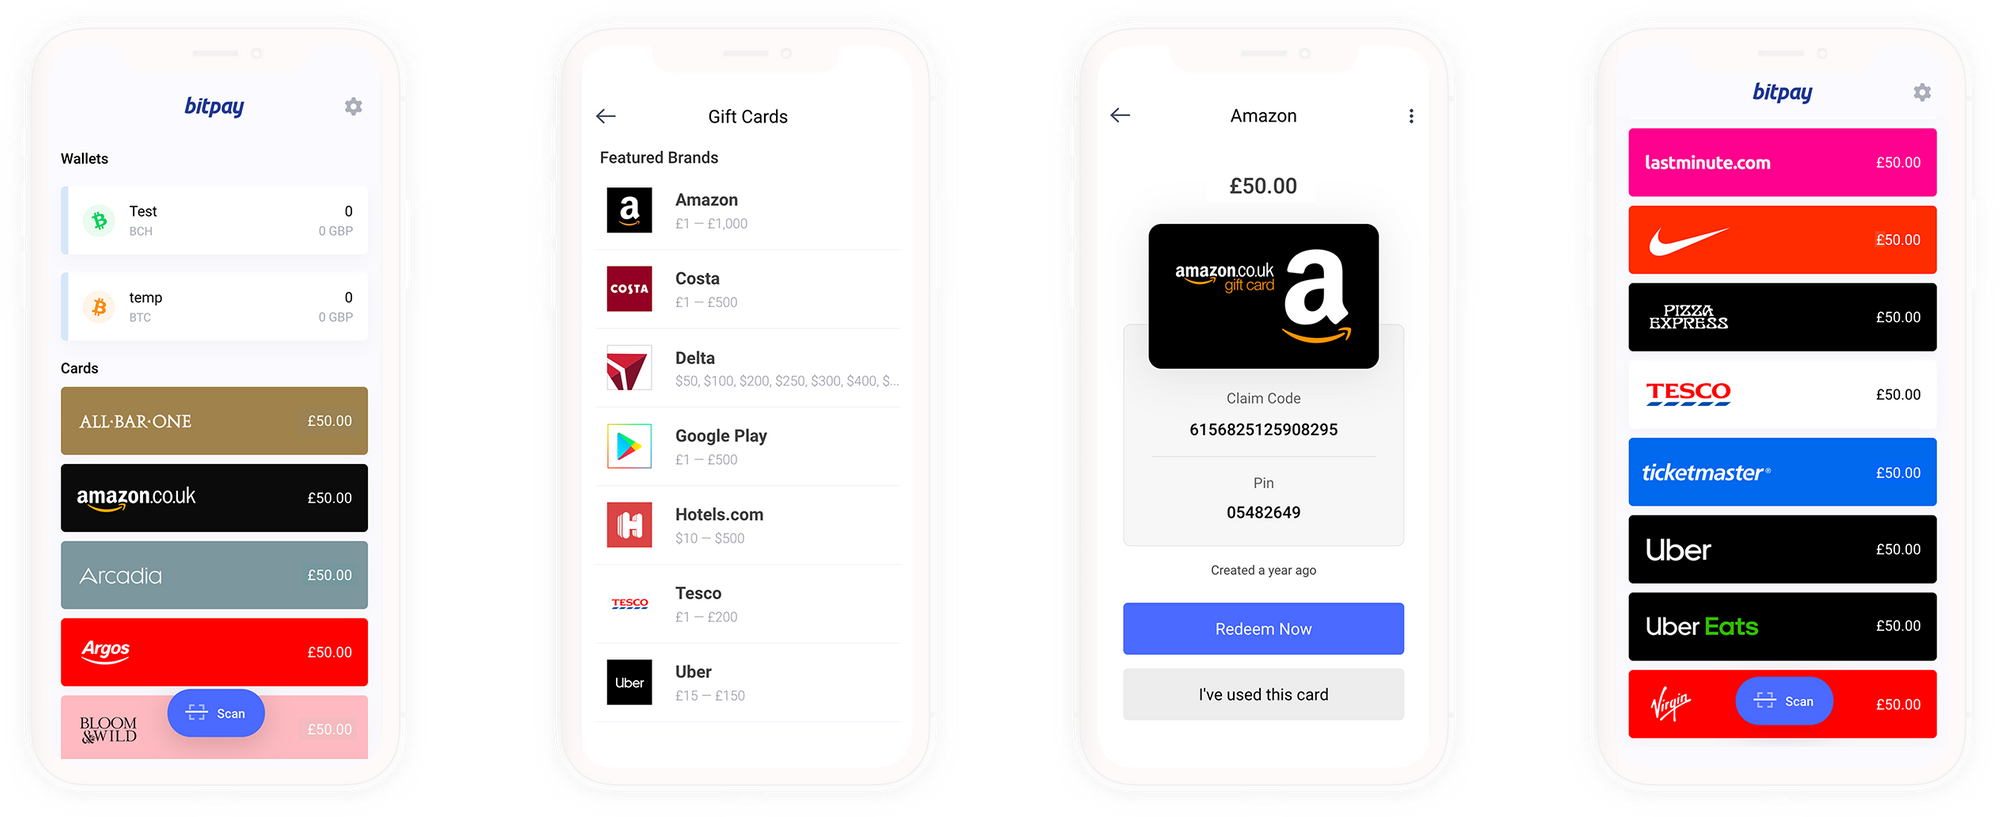 You Can Now Buy UK Gift Cards with the BitPay App